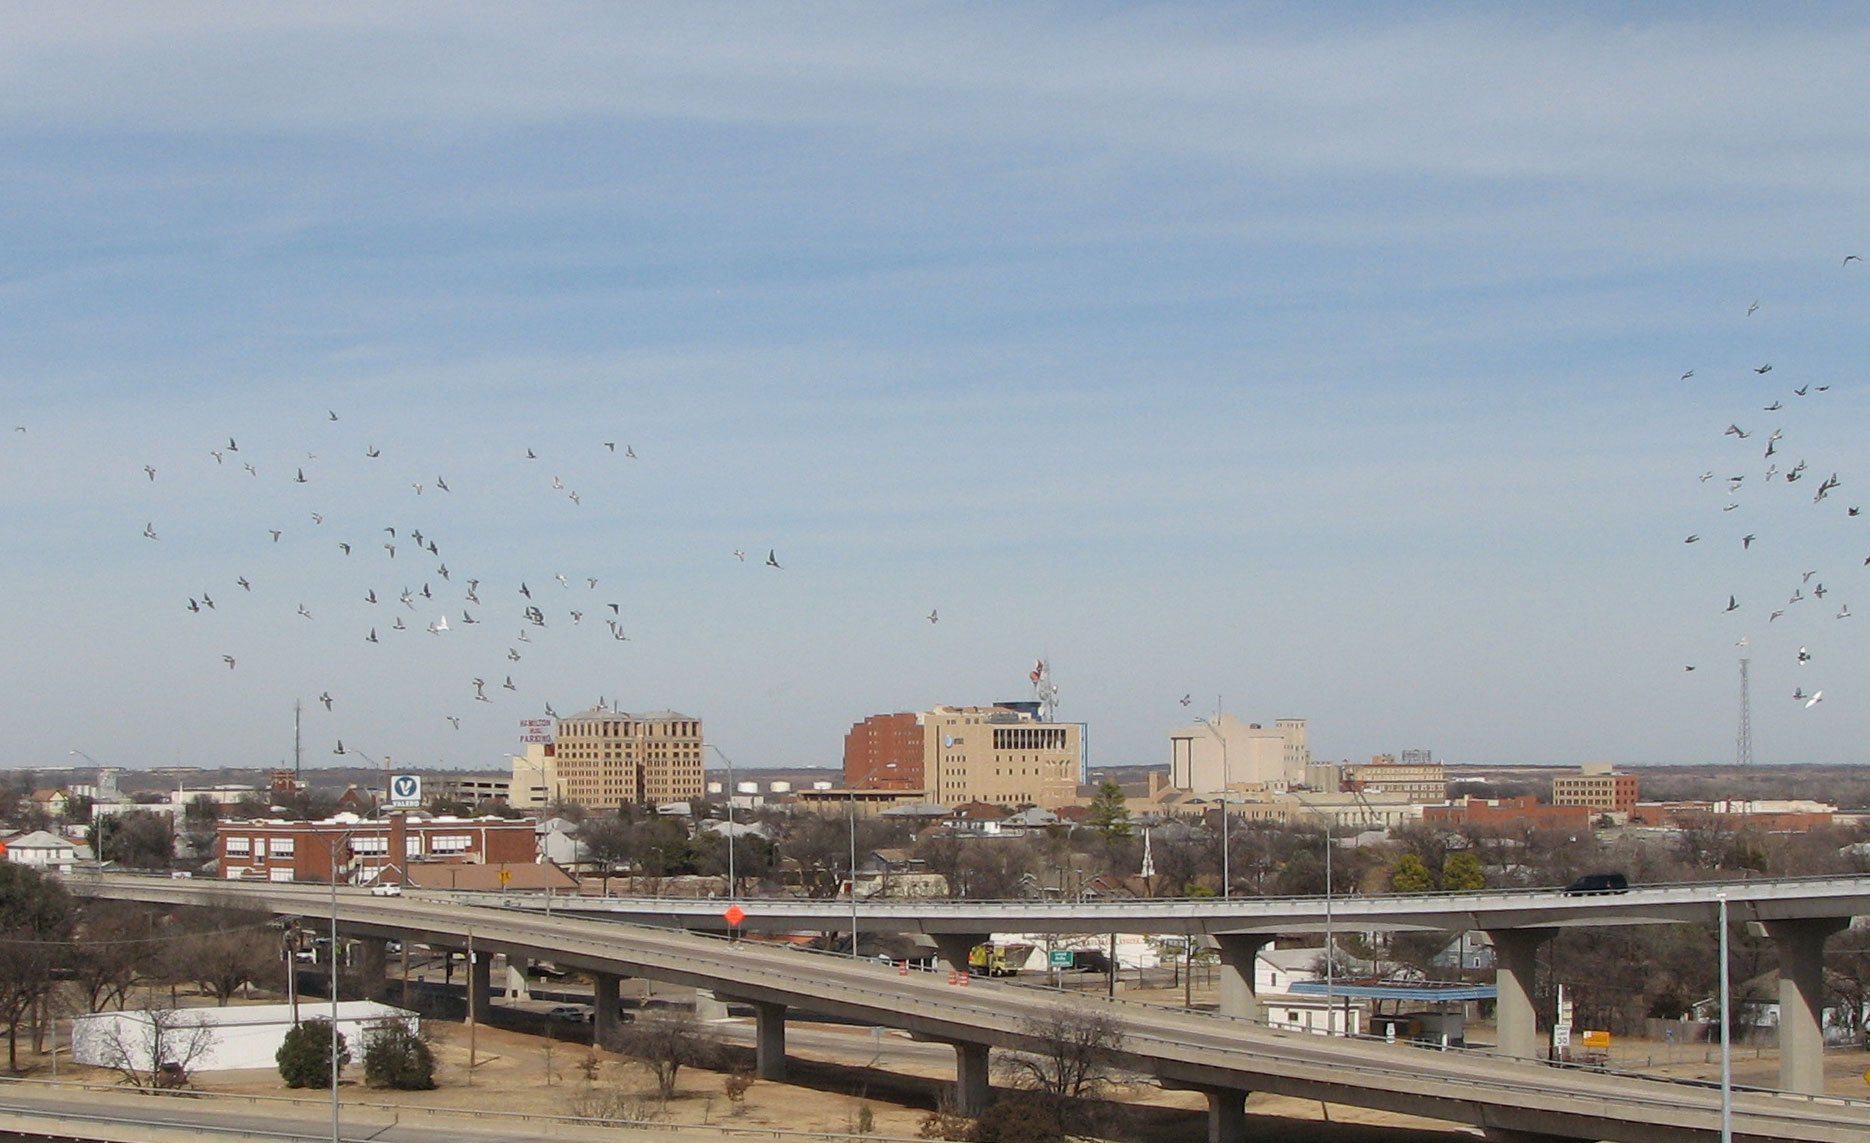 File:WICHITA Falls Skyline.jpg - Wikipedia, the free encyclopedia